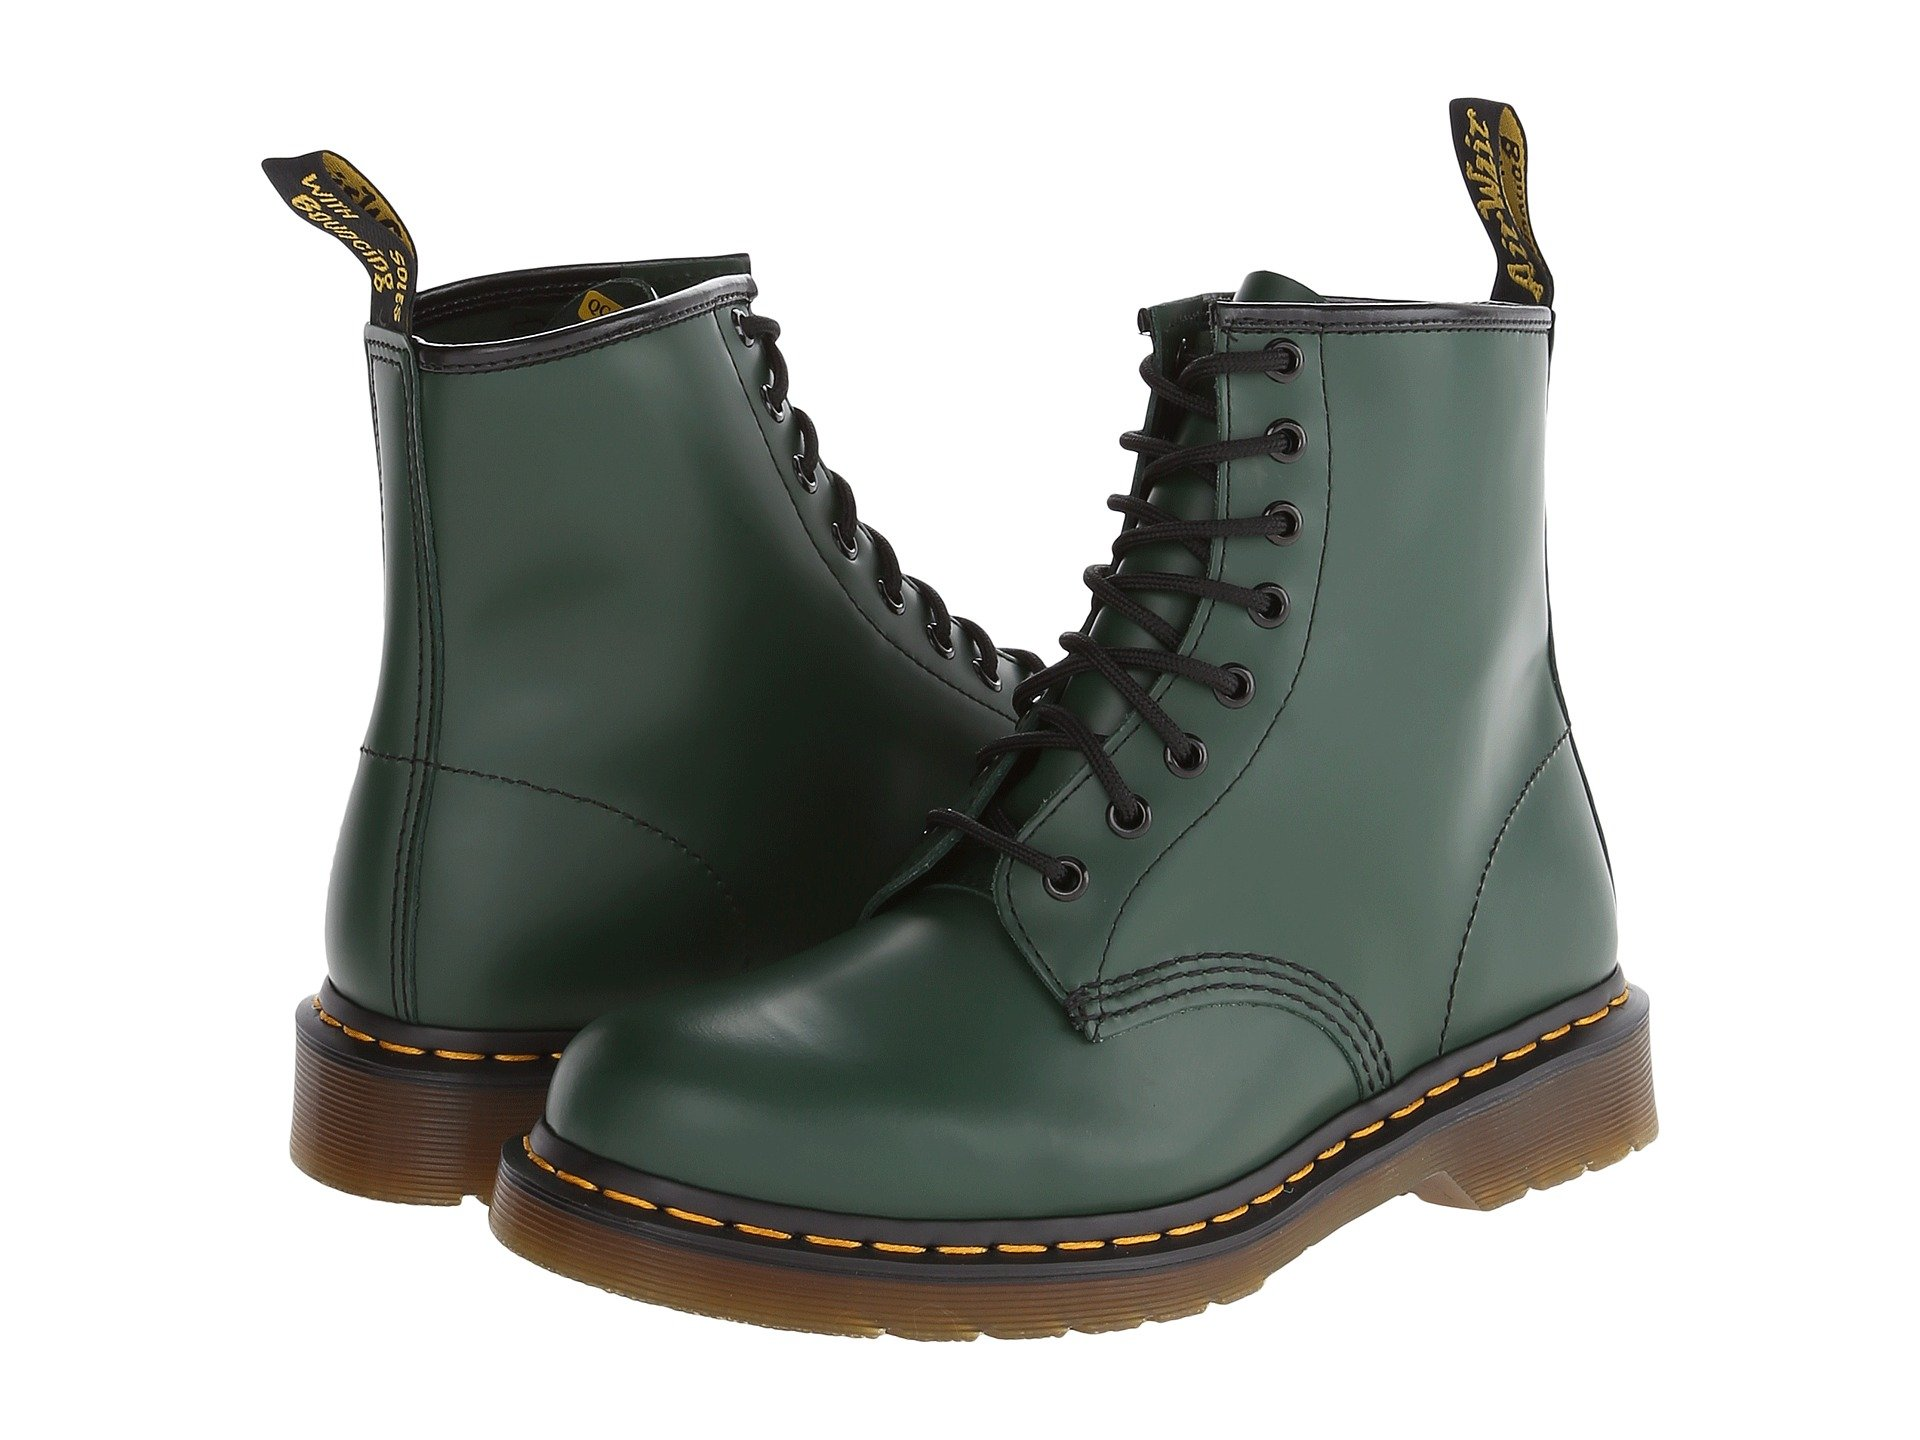 DR. MARTENS 1460, GREEN SMOOTH